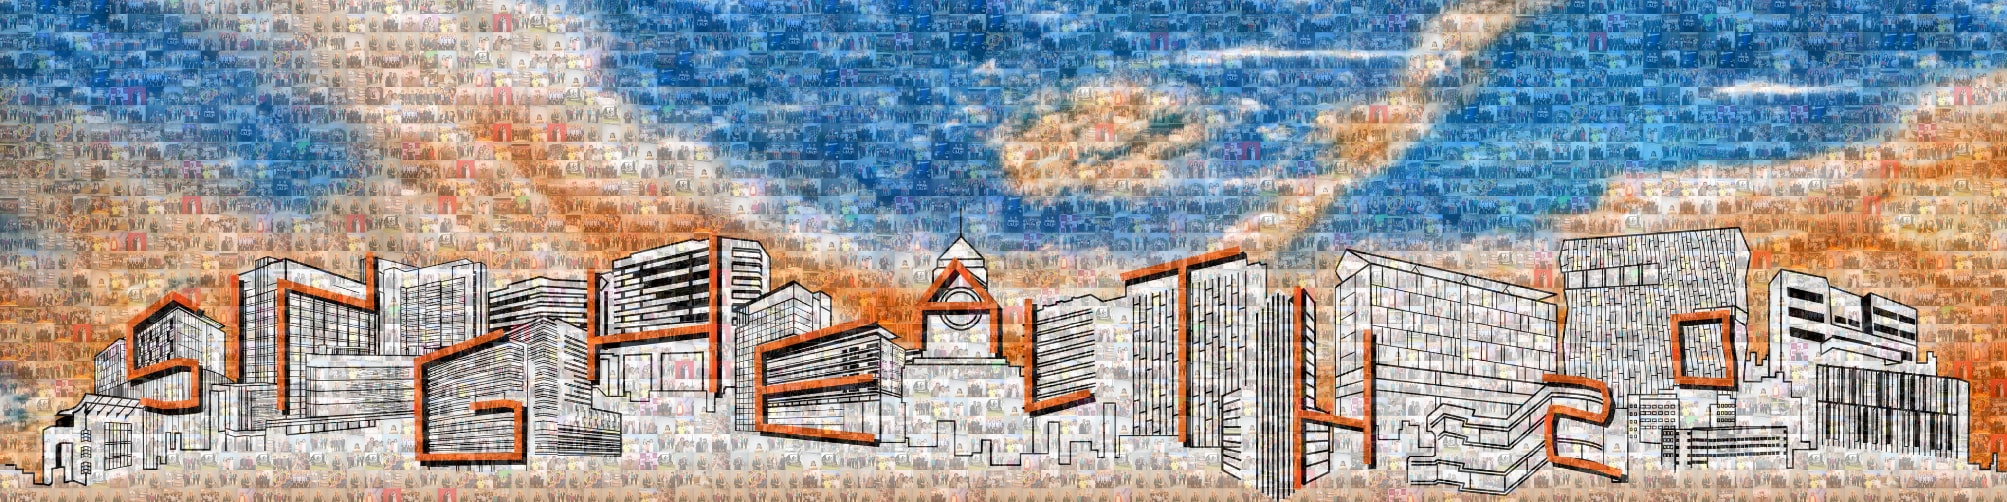 Photo Mosaic Canvas Singapore